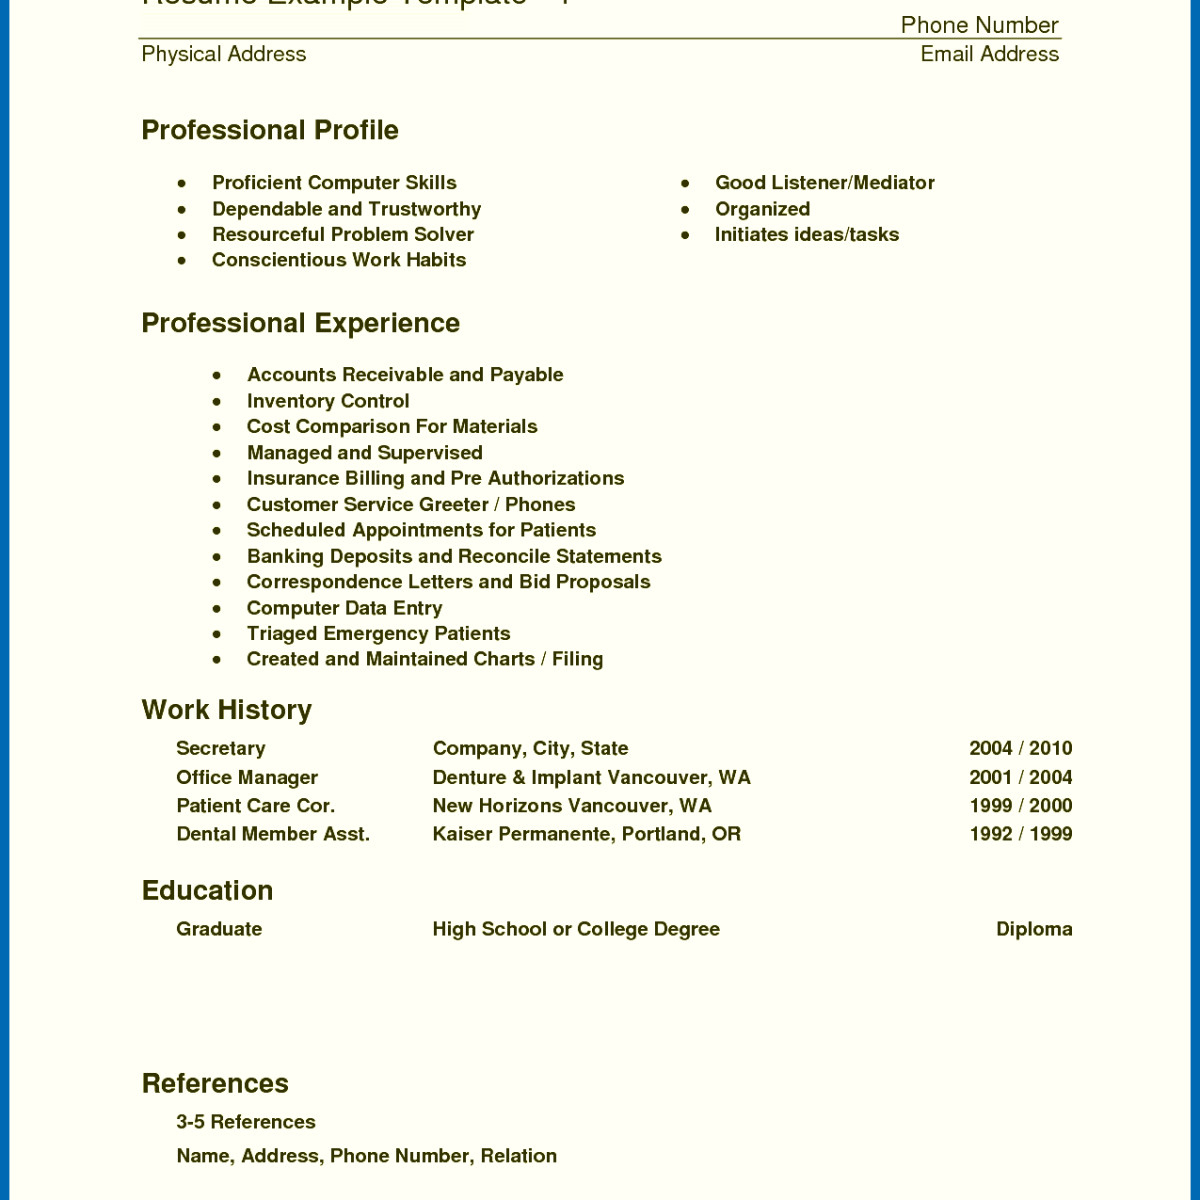 Resume for Medical School - Resume Medical assistant Examples Awesome Resume Skills for Customer